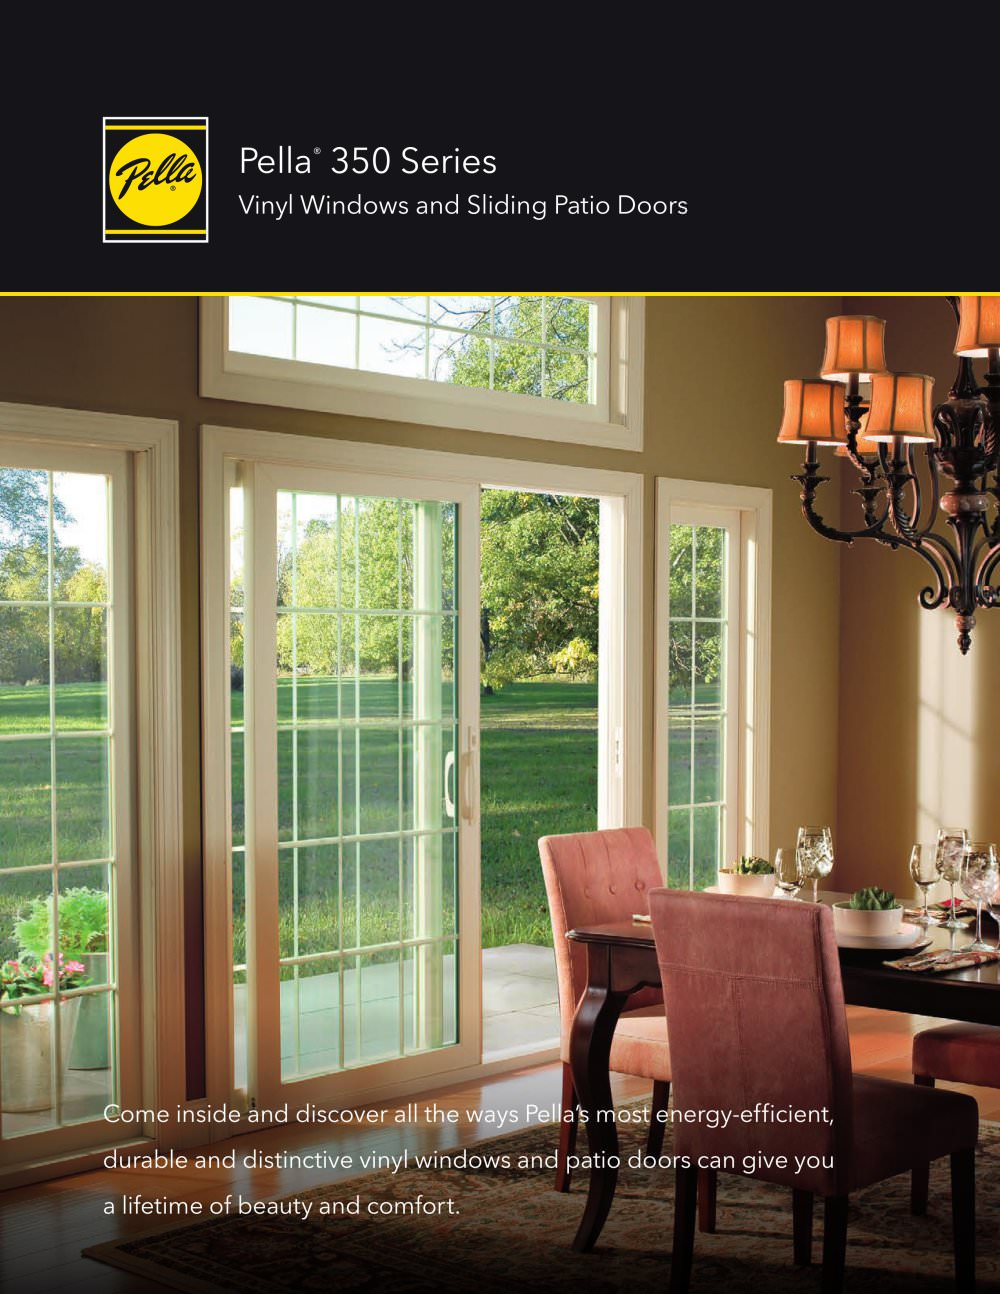 PELLA® 350 SERIES VINYL WINDOWS AND PATIO DOORS   1 / 12 Pages